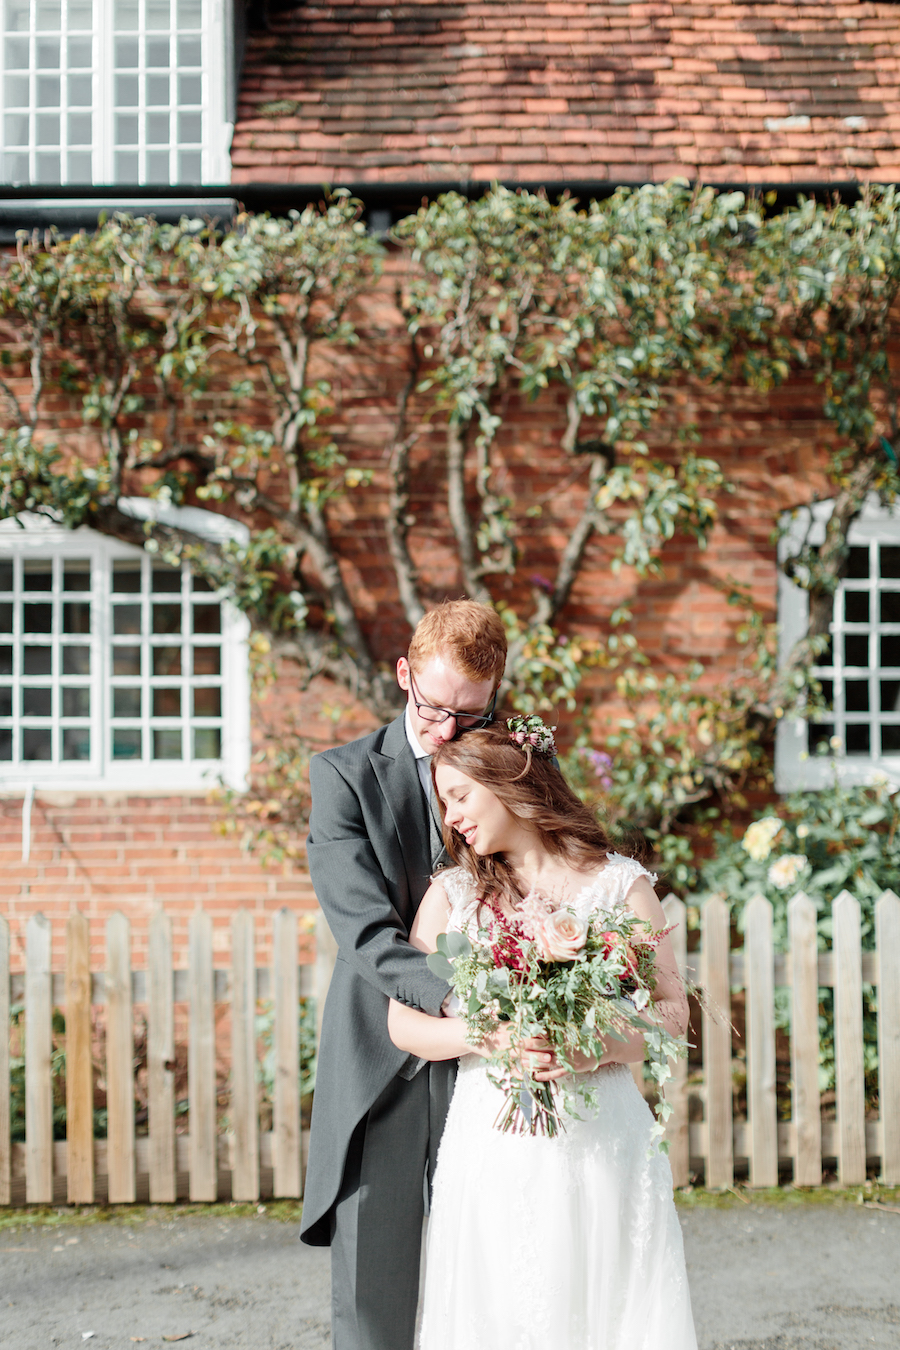 English summer wedding at Alveston Pastures, with Hannah K Photography (22)